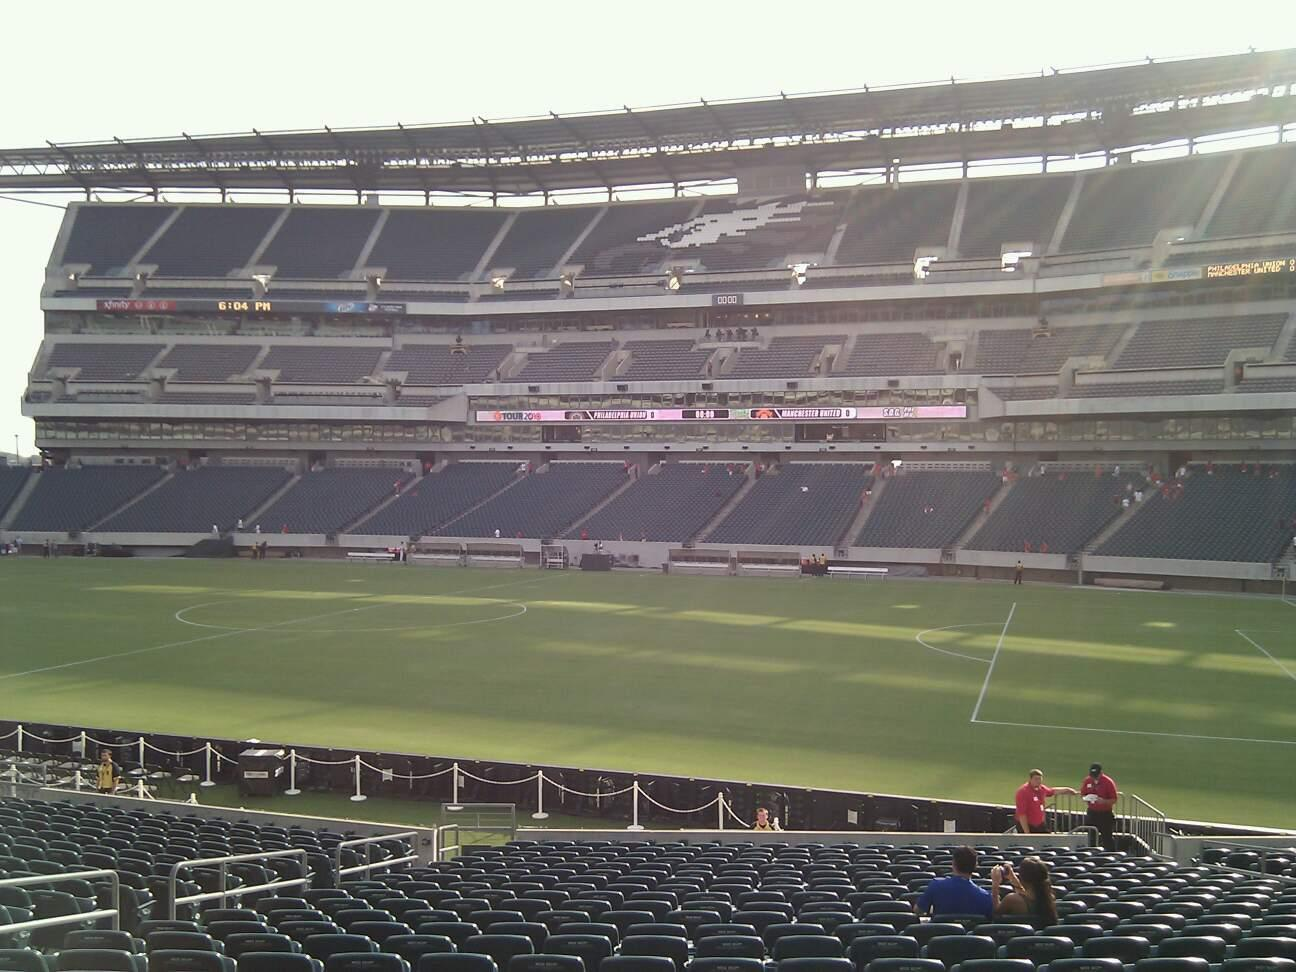 Lincoln Financial Field Section 123 Row 23 Seat 14